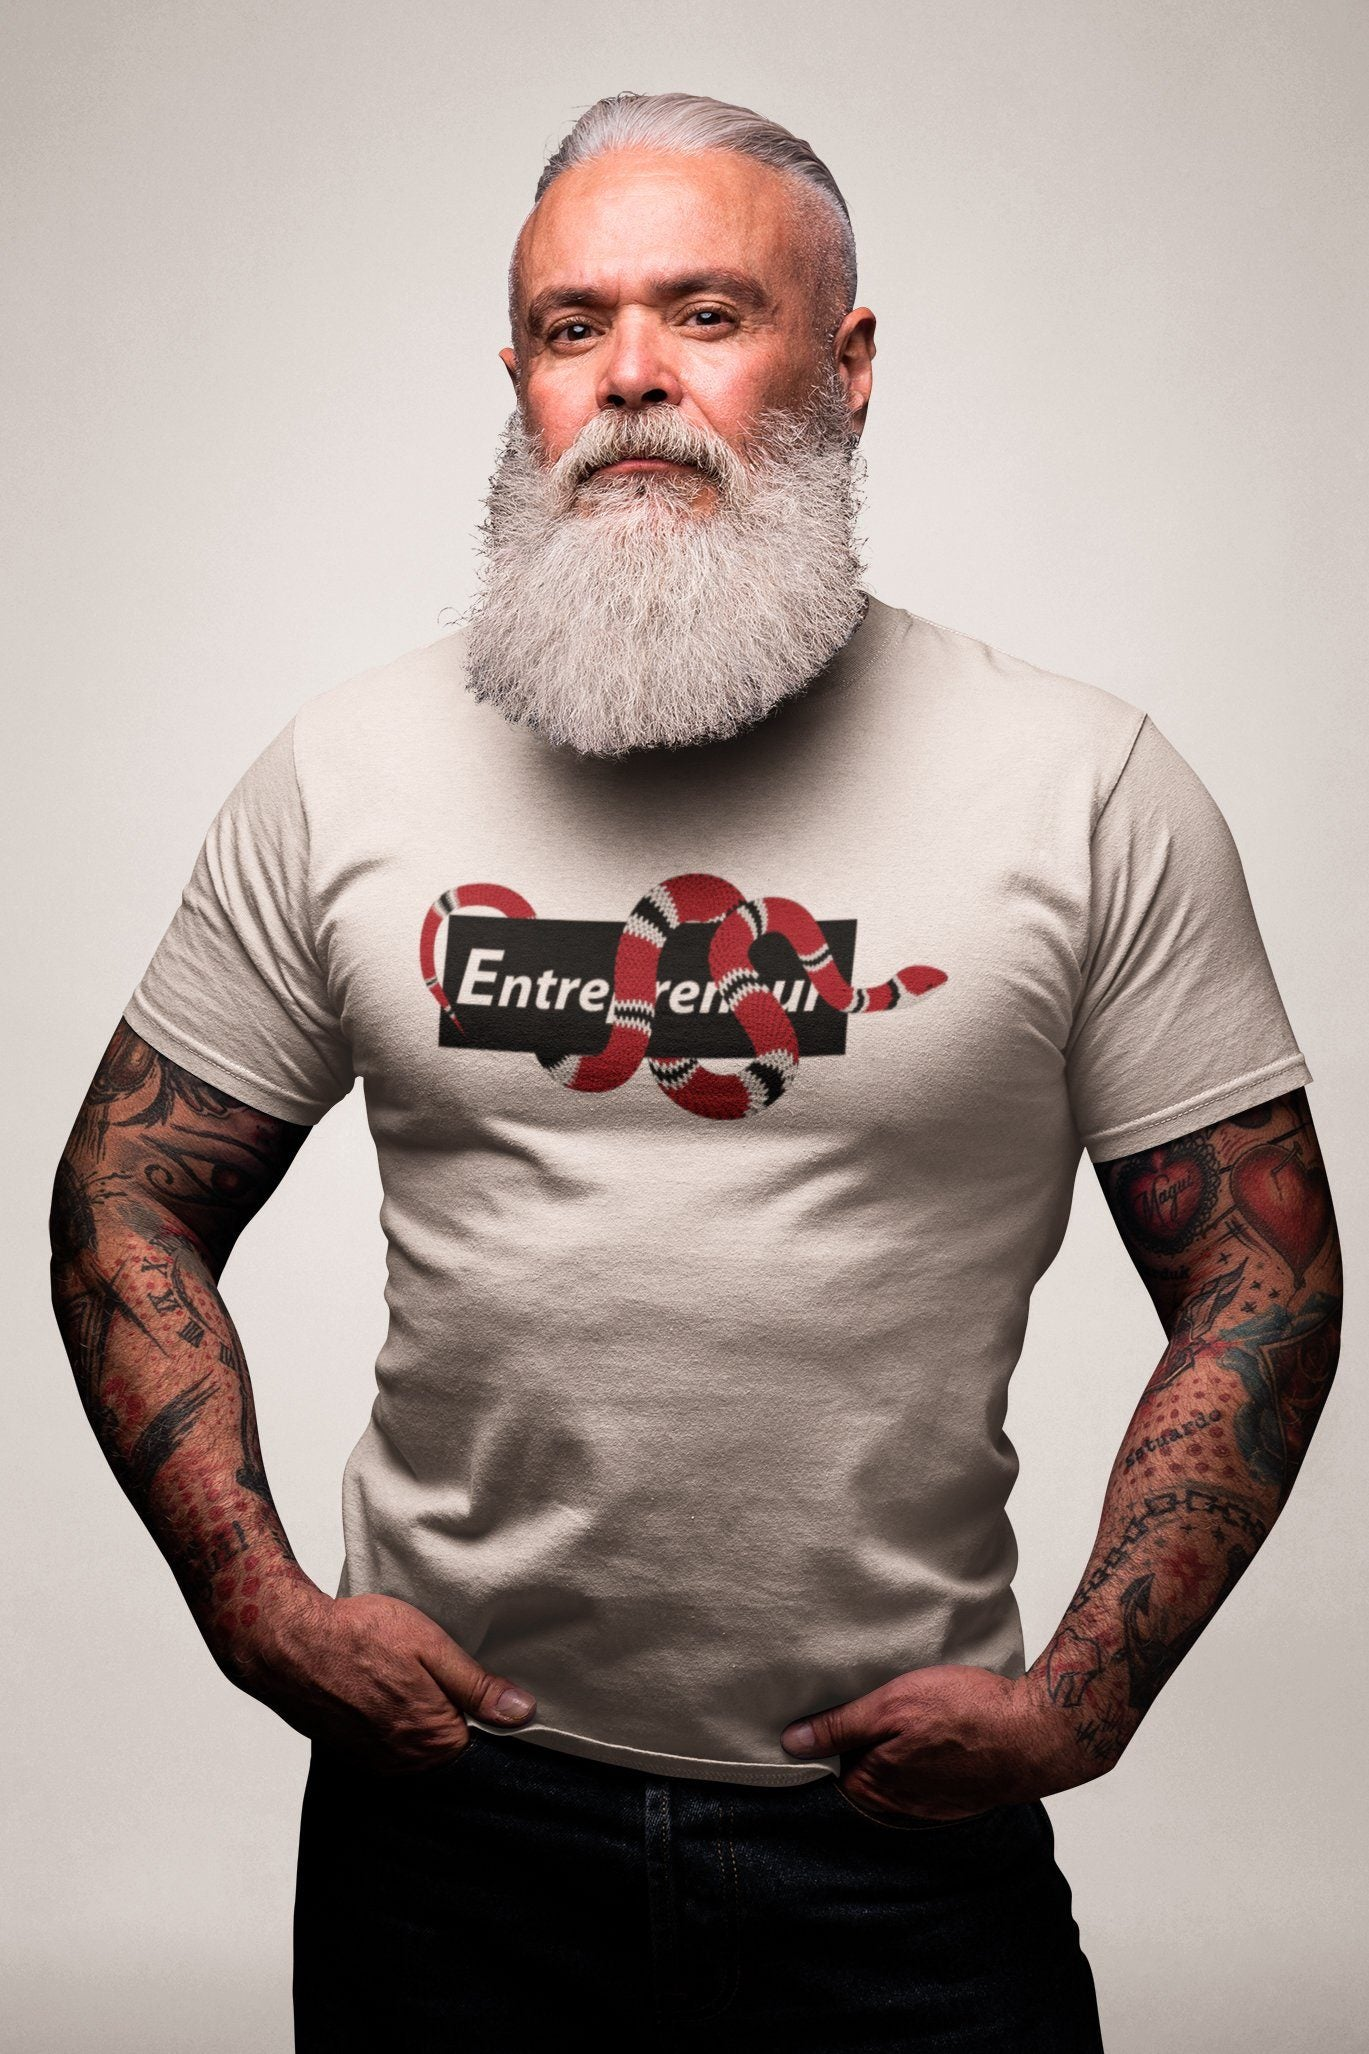 Entrepreneur Style TeeT-shirtEntrepreneurKing.coWhiteS motivational quotes entrepreneur inspirational quotes